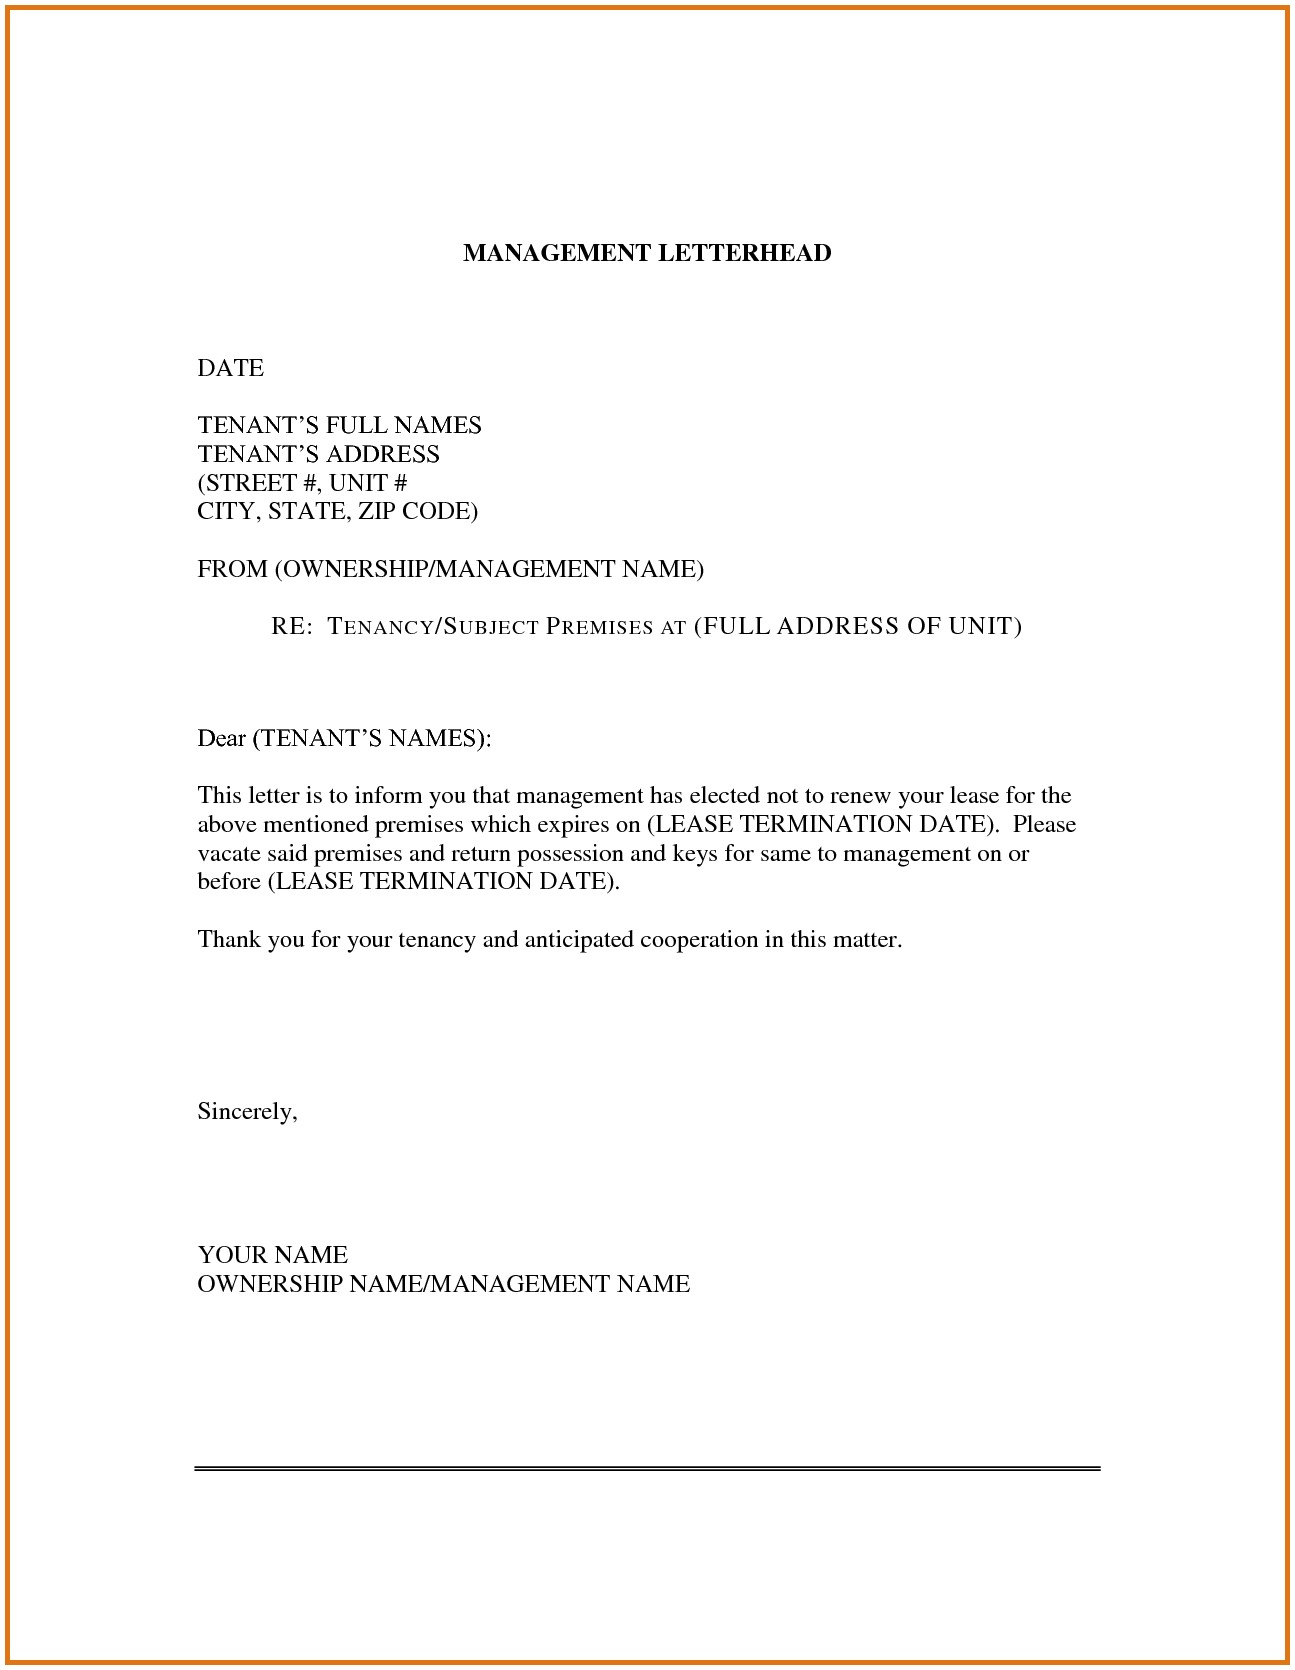 Lease Extension Letter Template - Lease Renewal Letter